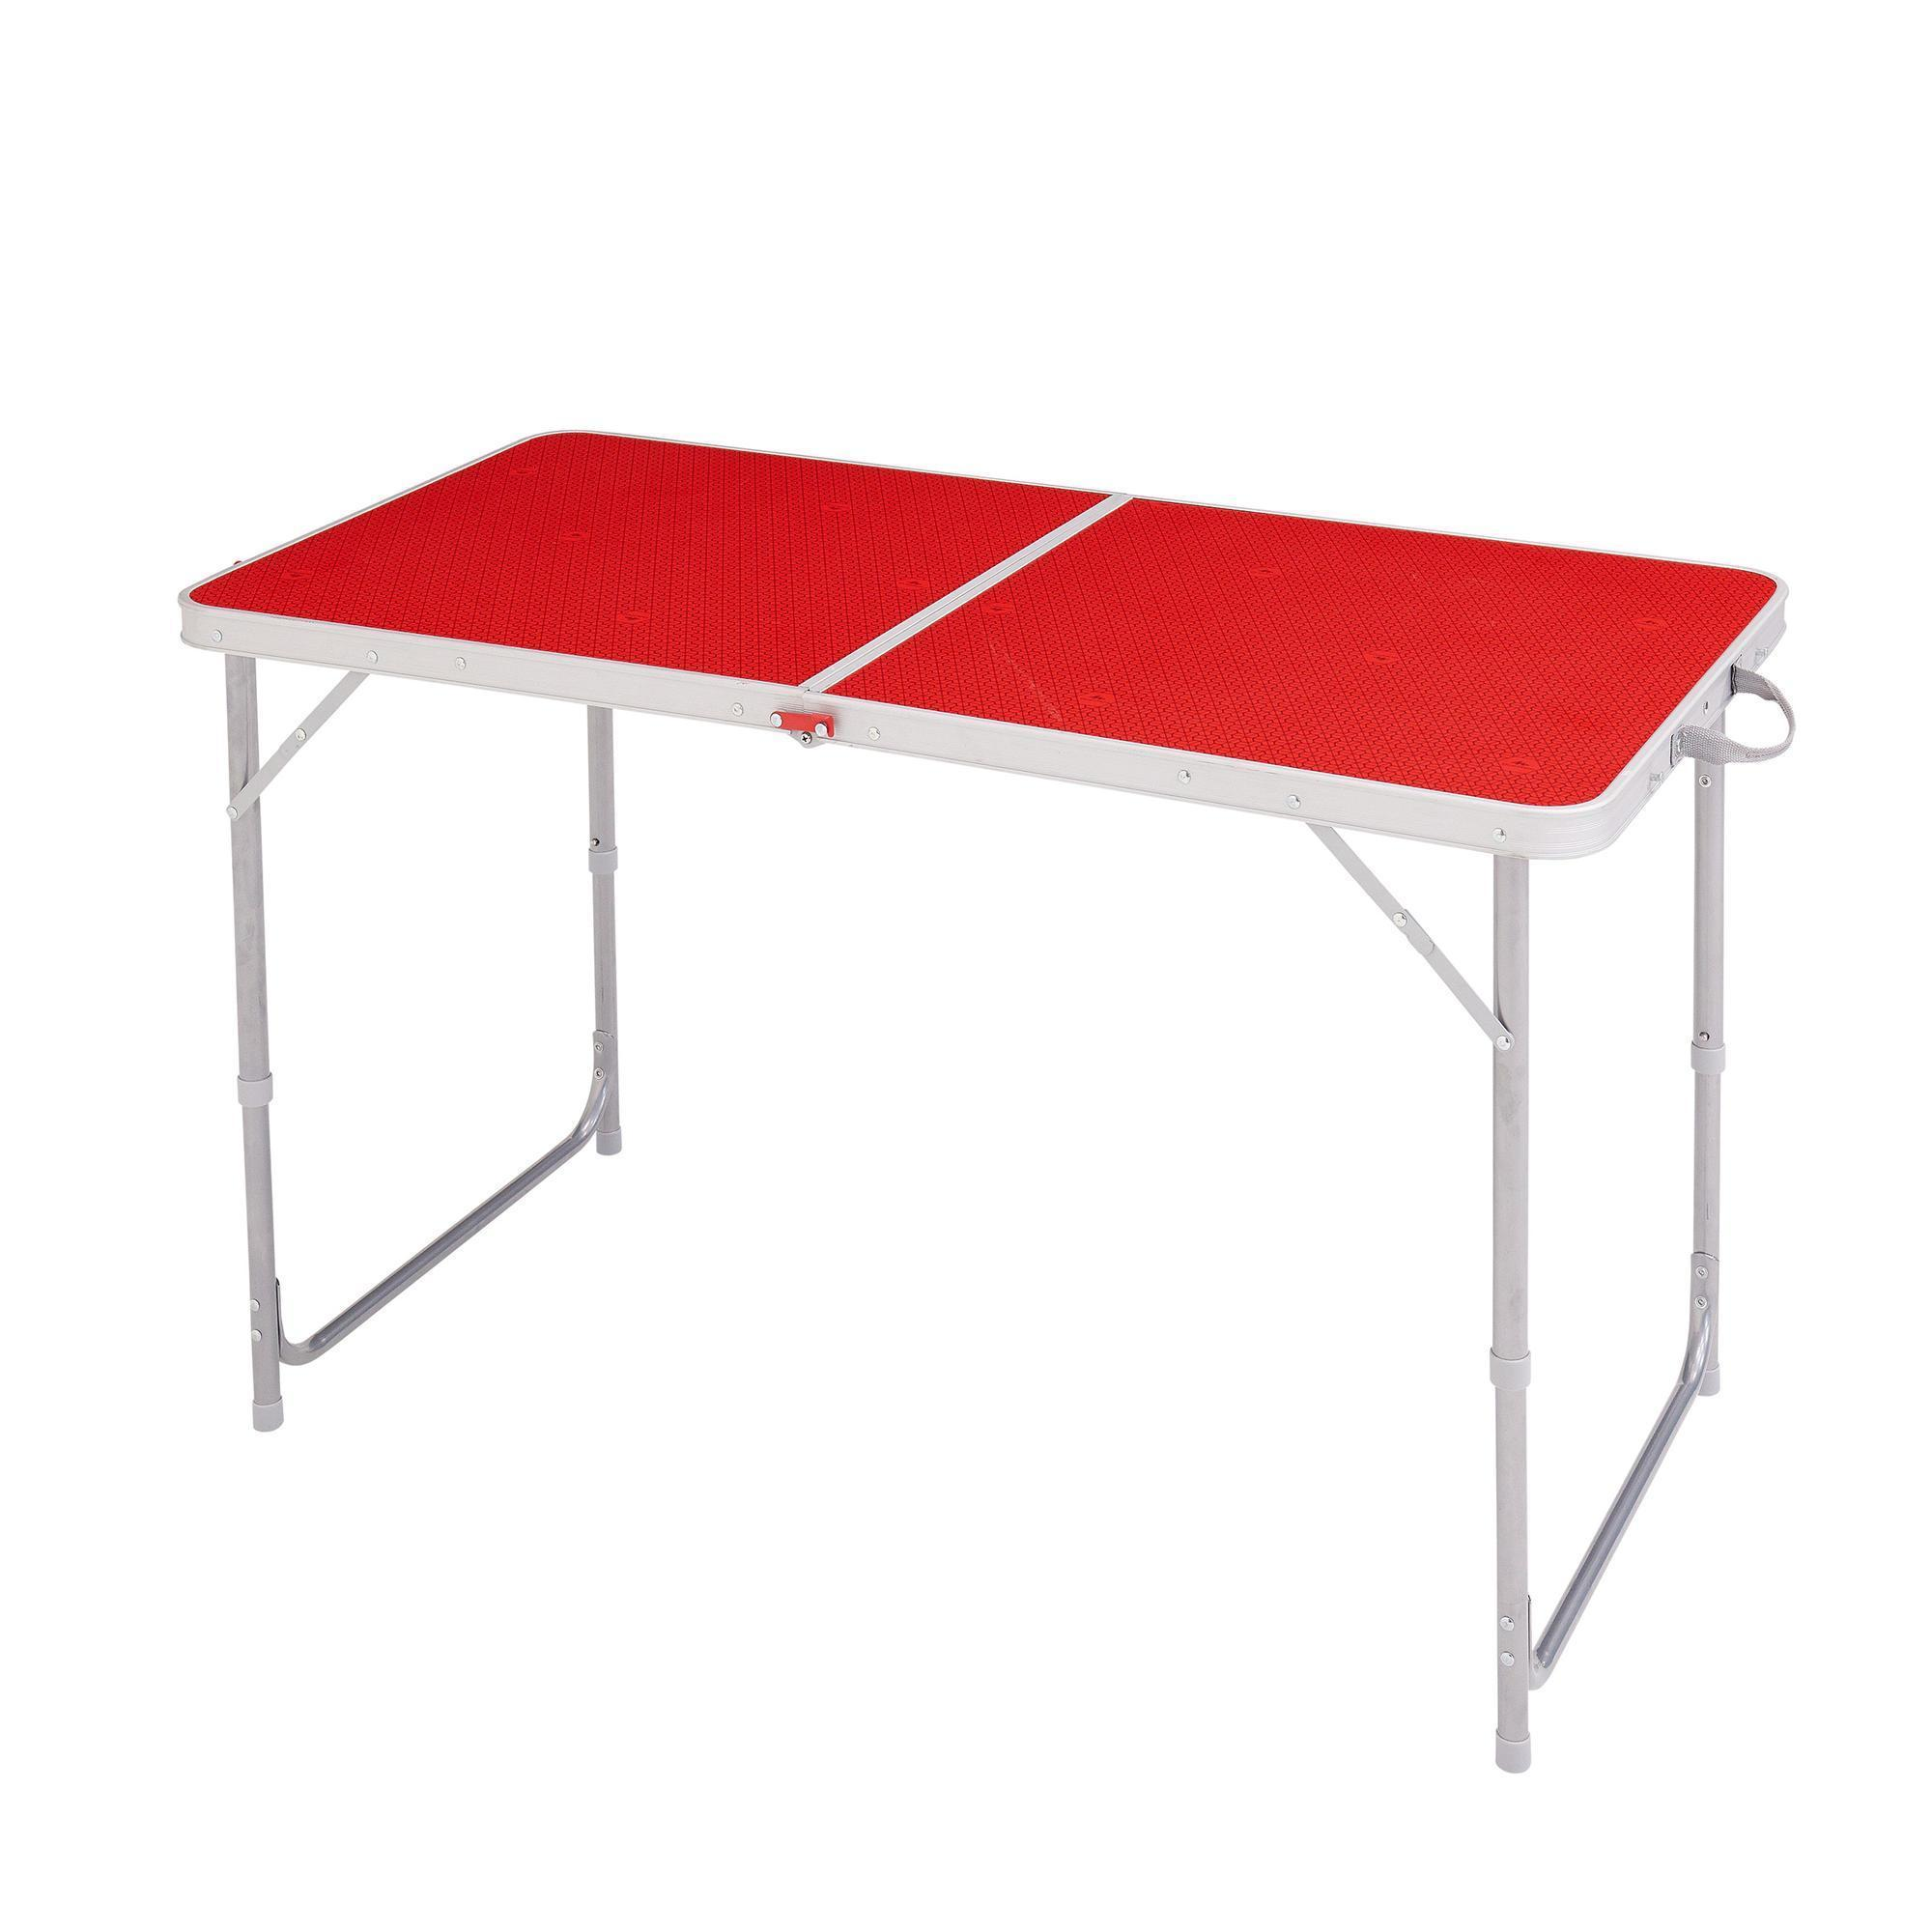 Camping table hiker s camp 4 or 6 people red